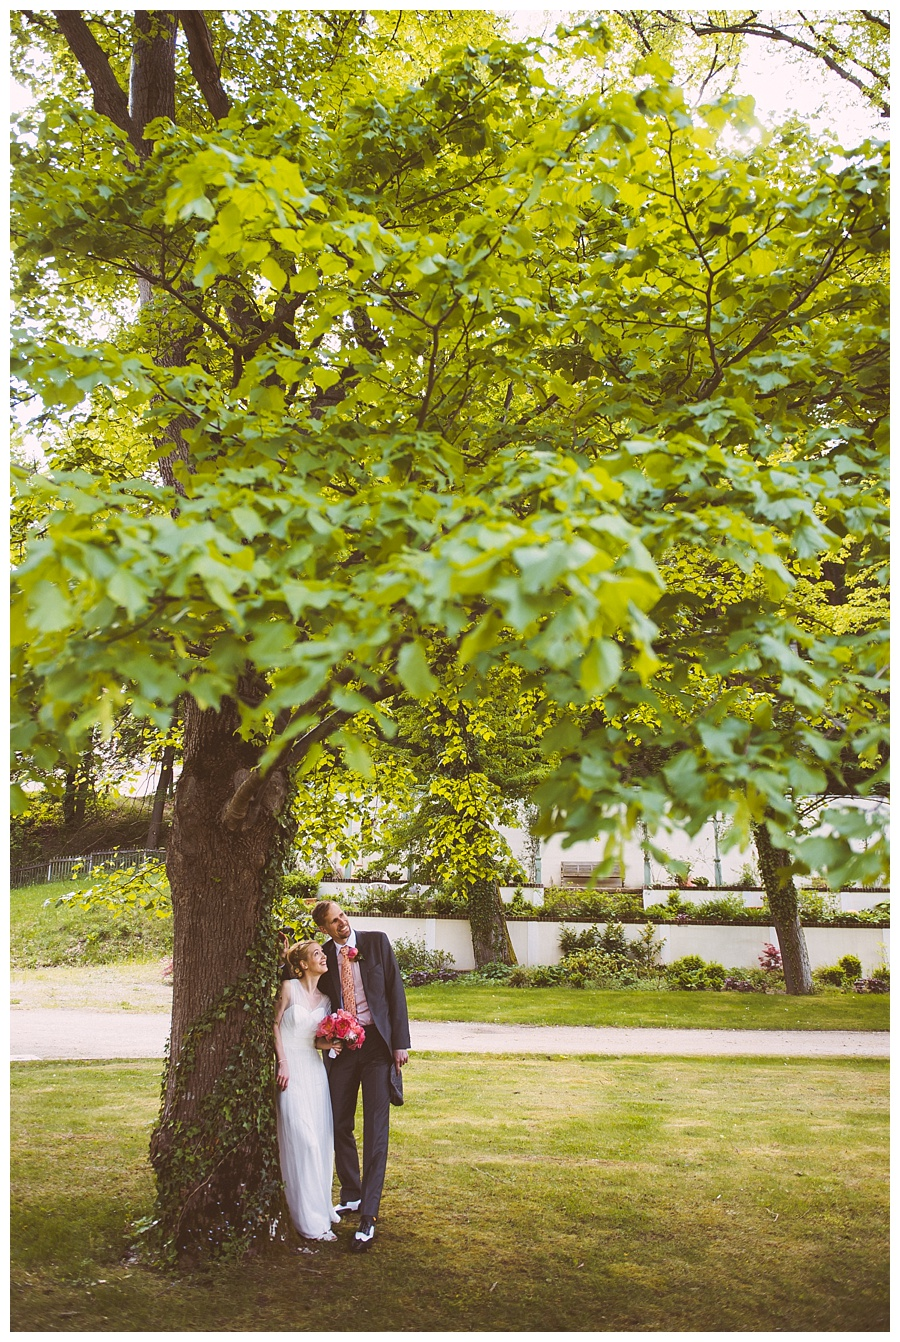 046Schloss_wartholz_Austria_weddings_WEB